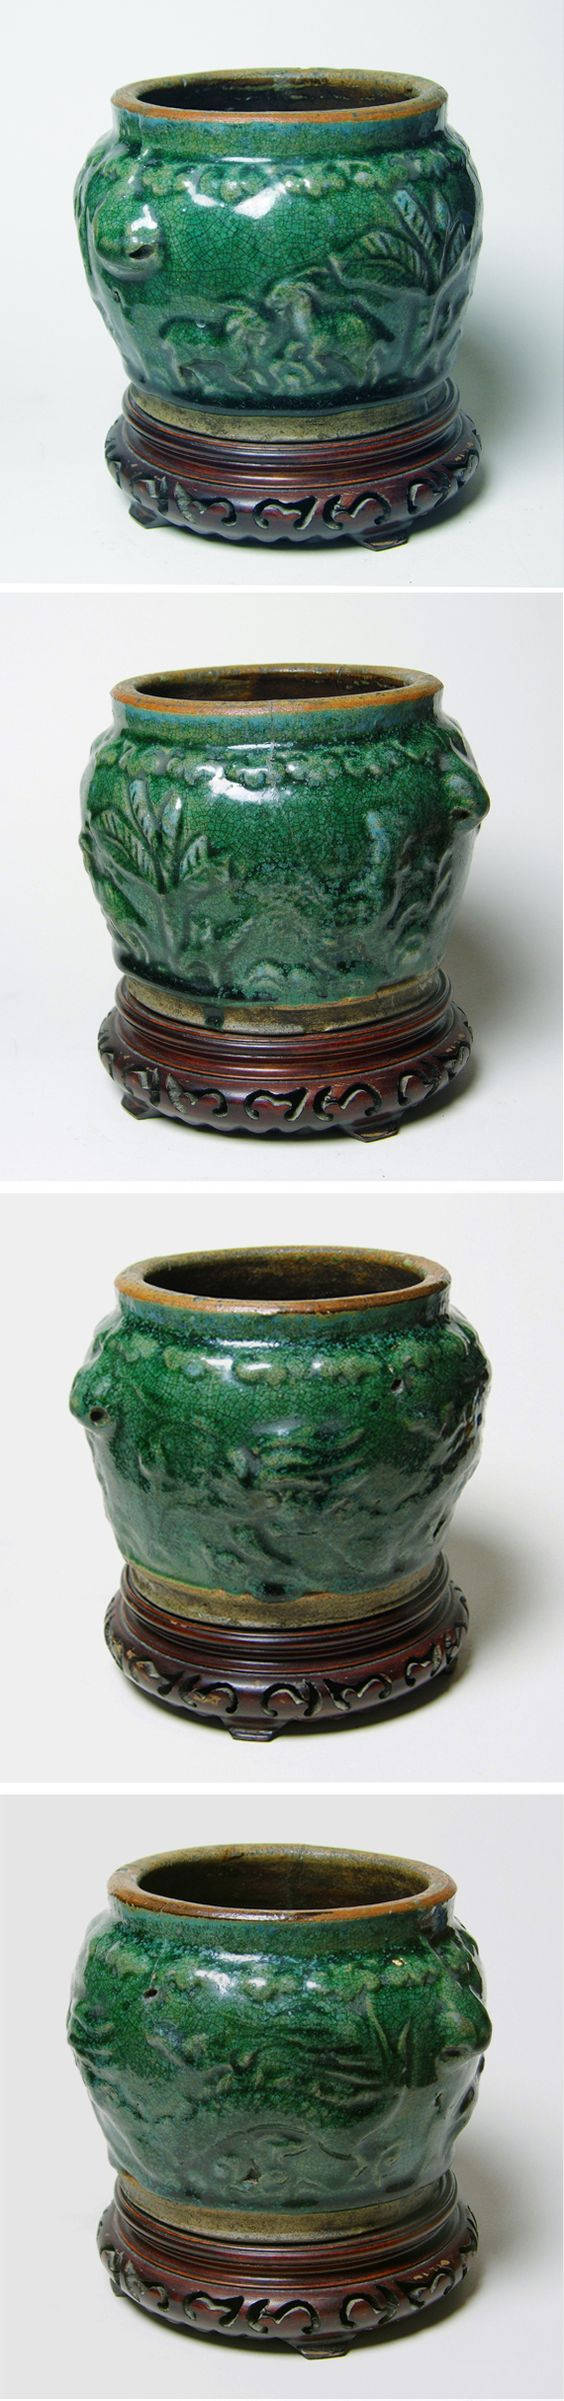 Chinese ceramic jar, early Ming Dynasty 15.Century, diam. 15,5 cm, hight 11 cm. Strong brown shards, green copper glaze with fine crackle, in places, light blue sprinklings and dull spots. Remote inward foot ring without glaze. Shoulder decor ornamental round fruits with leaves. In front left half two playing goats under a Banana tree, to the right of the garden a cock between plants. The other side shows a complete dragon with scaly body and legs with three claws.